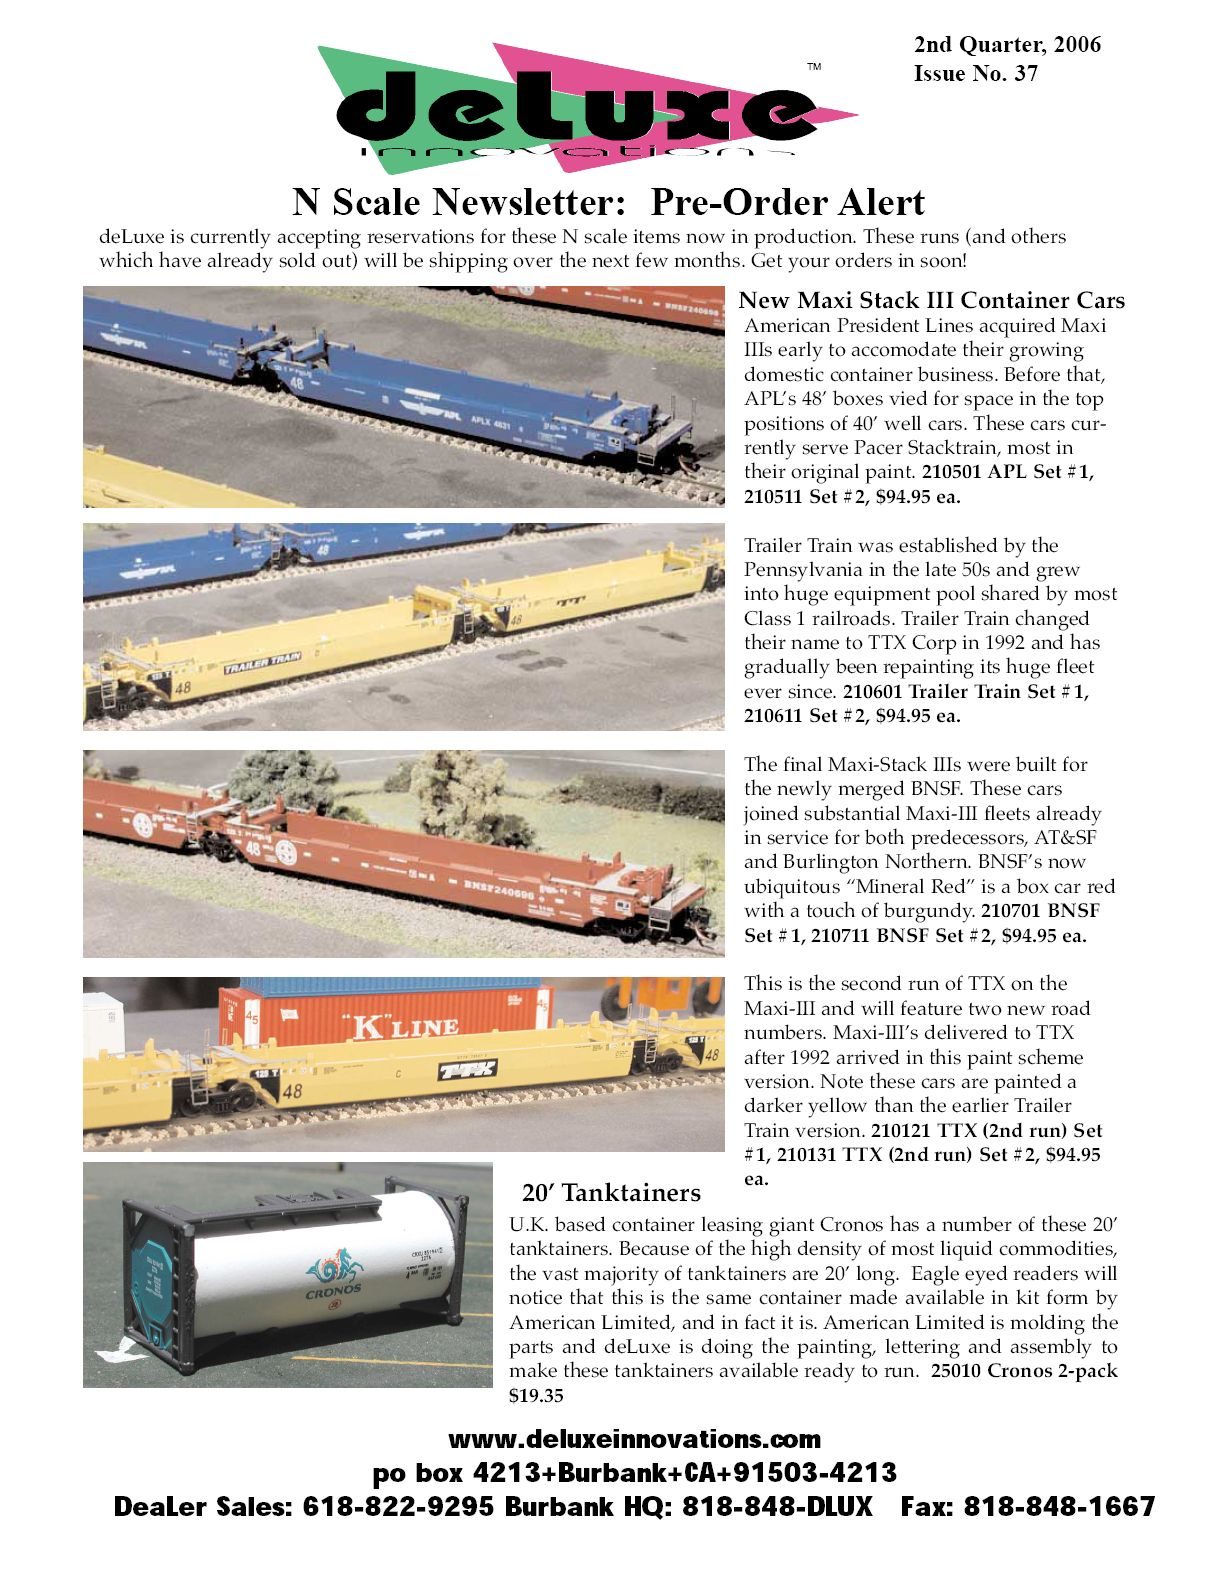 Deluxe 2nd Quarter Newletter May 2006 Page 1